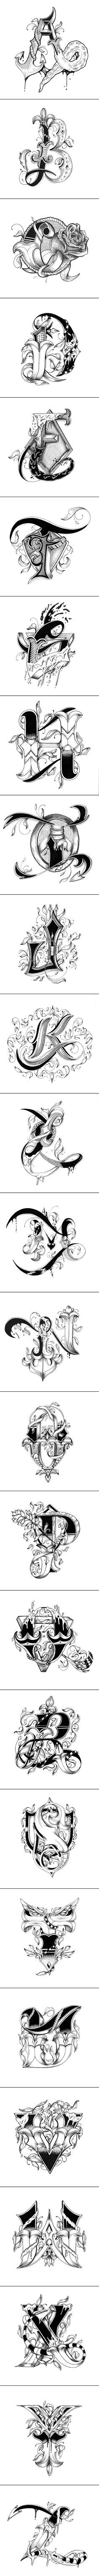 Love Letters Alphabet Hand Drawn by Raul Alejandro